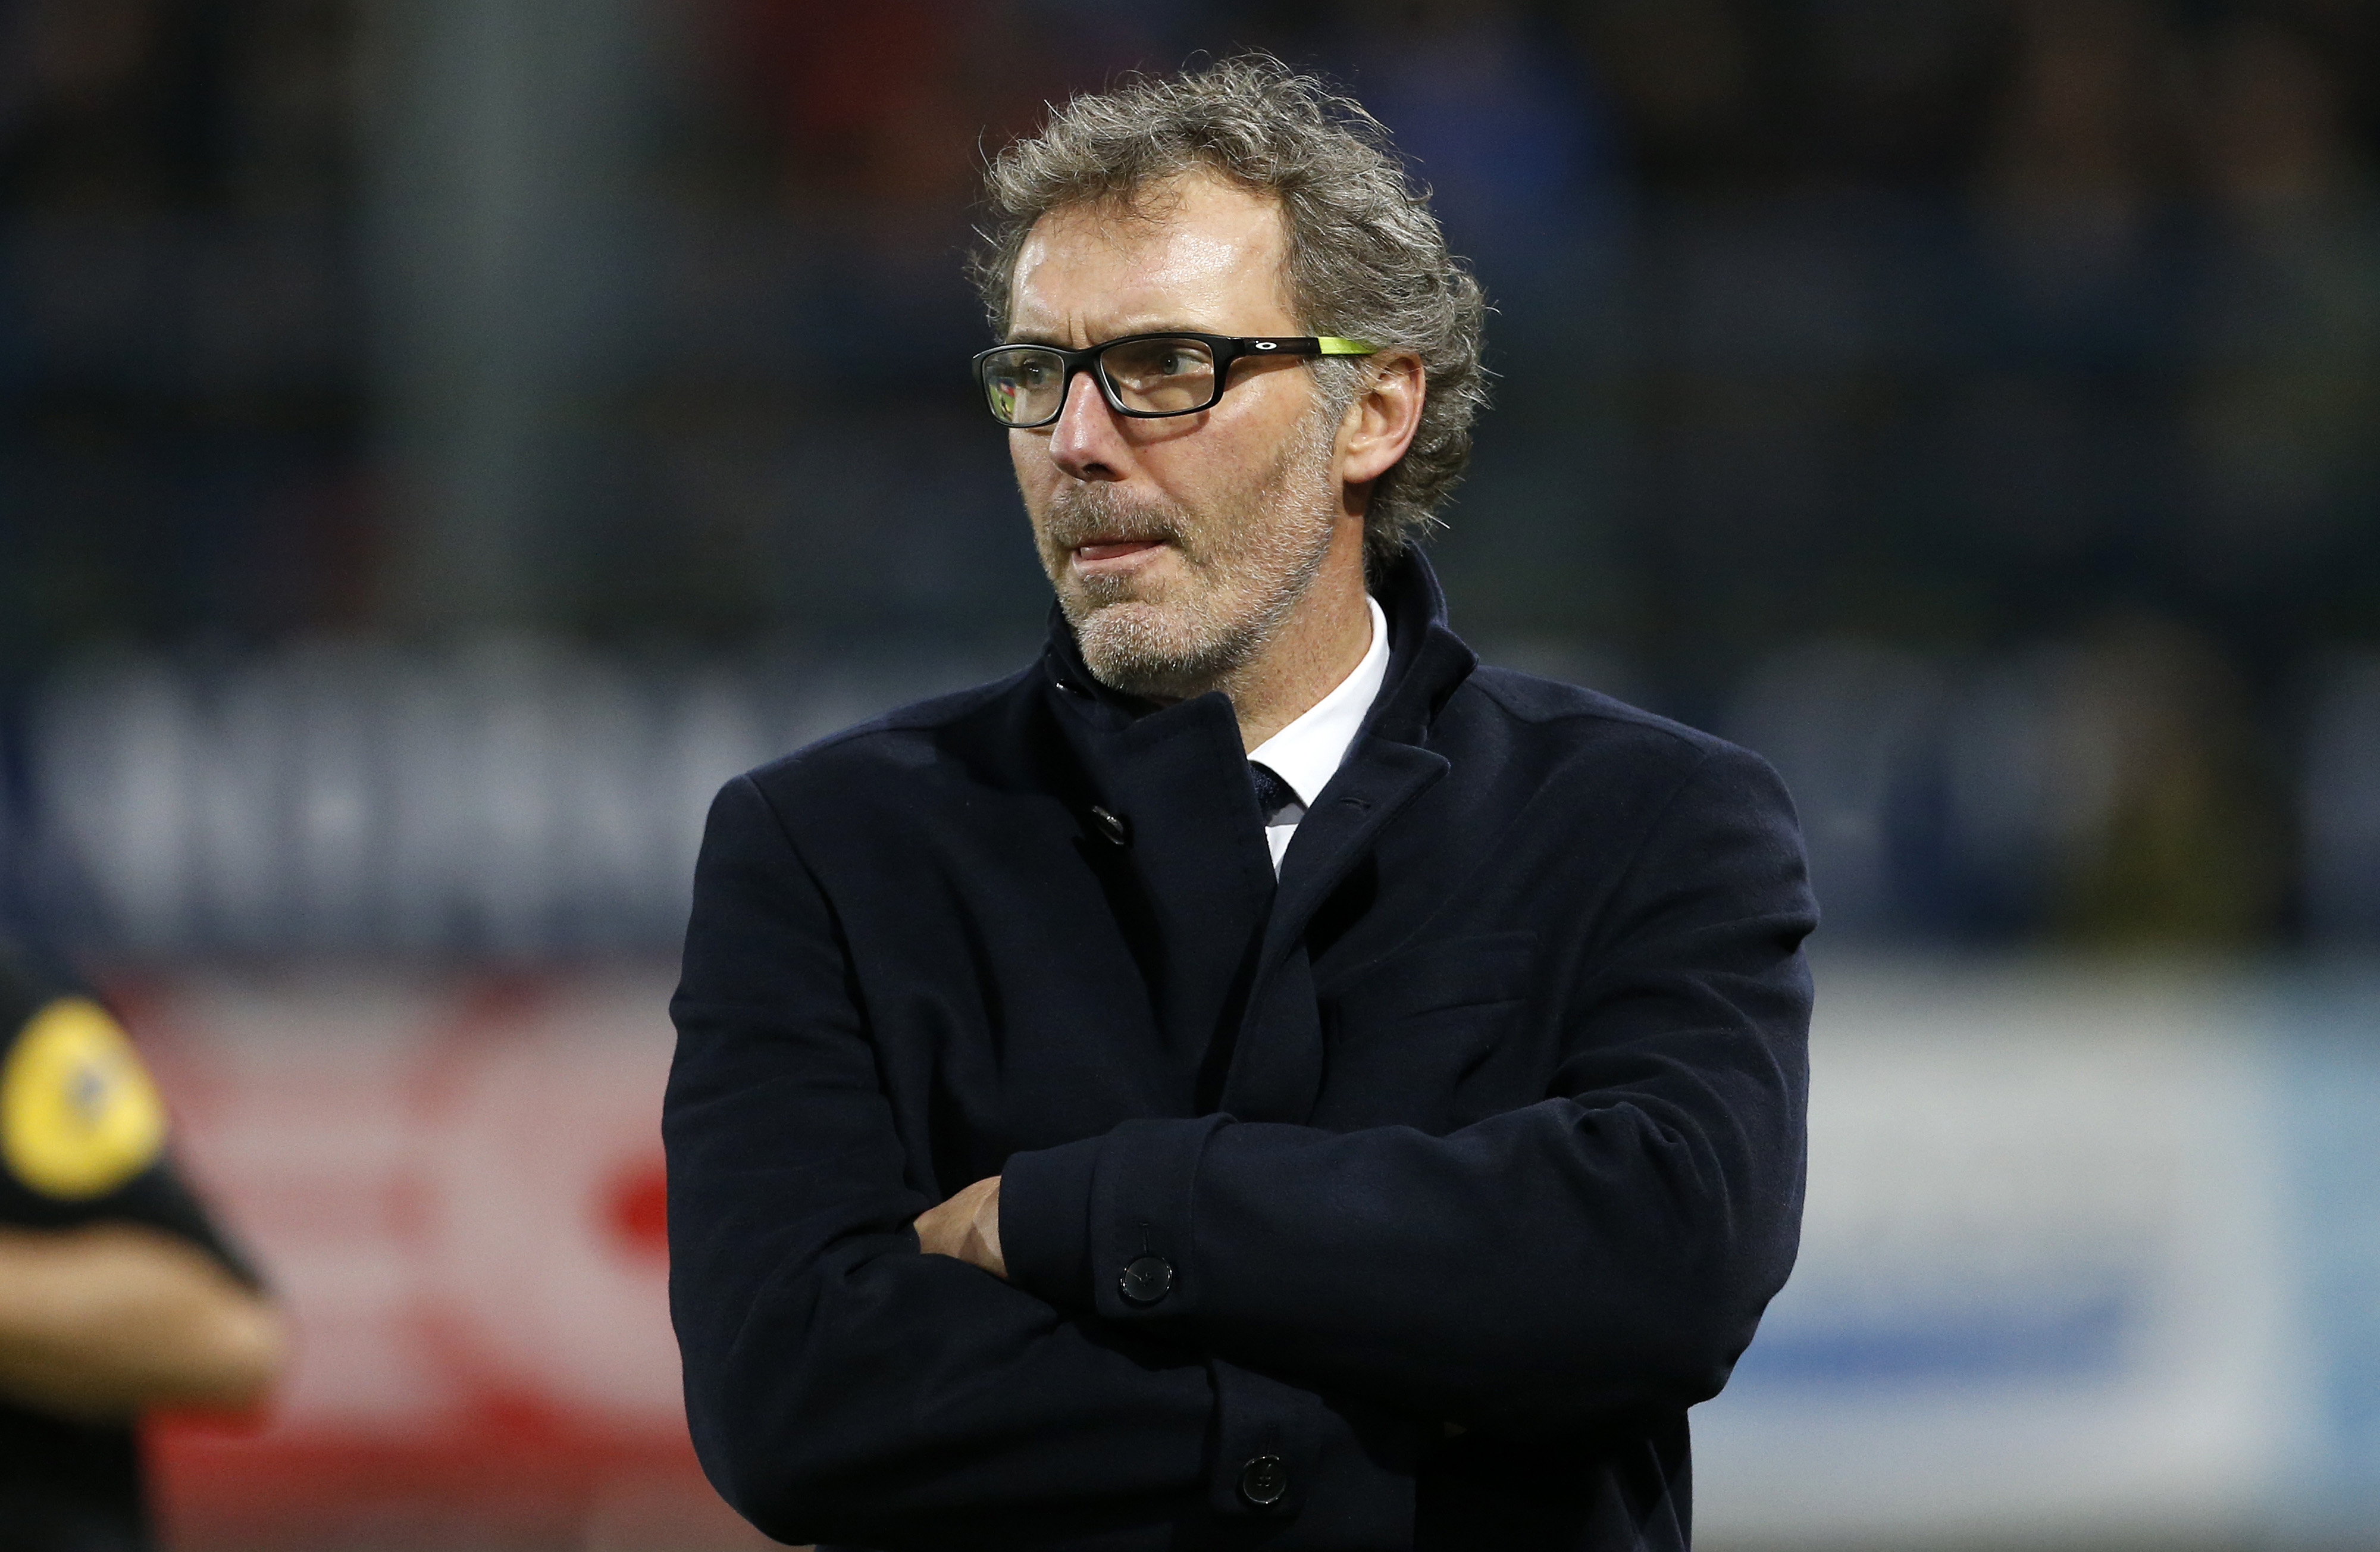 CAEN, FRANCE - DECEMBER 19: Coach of PSG Laurent Blanc looks on during the French Ligue 1 match between Stade Malherbe de Caen and Paris Saint-Germain (PSG) at Stade Michel D'Ornano on December 19, 2015 in Caen, France. (Photo by Jean Catuffe/Getty Images)